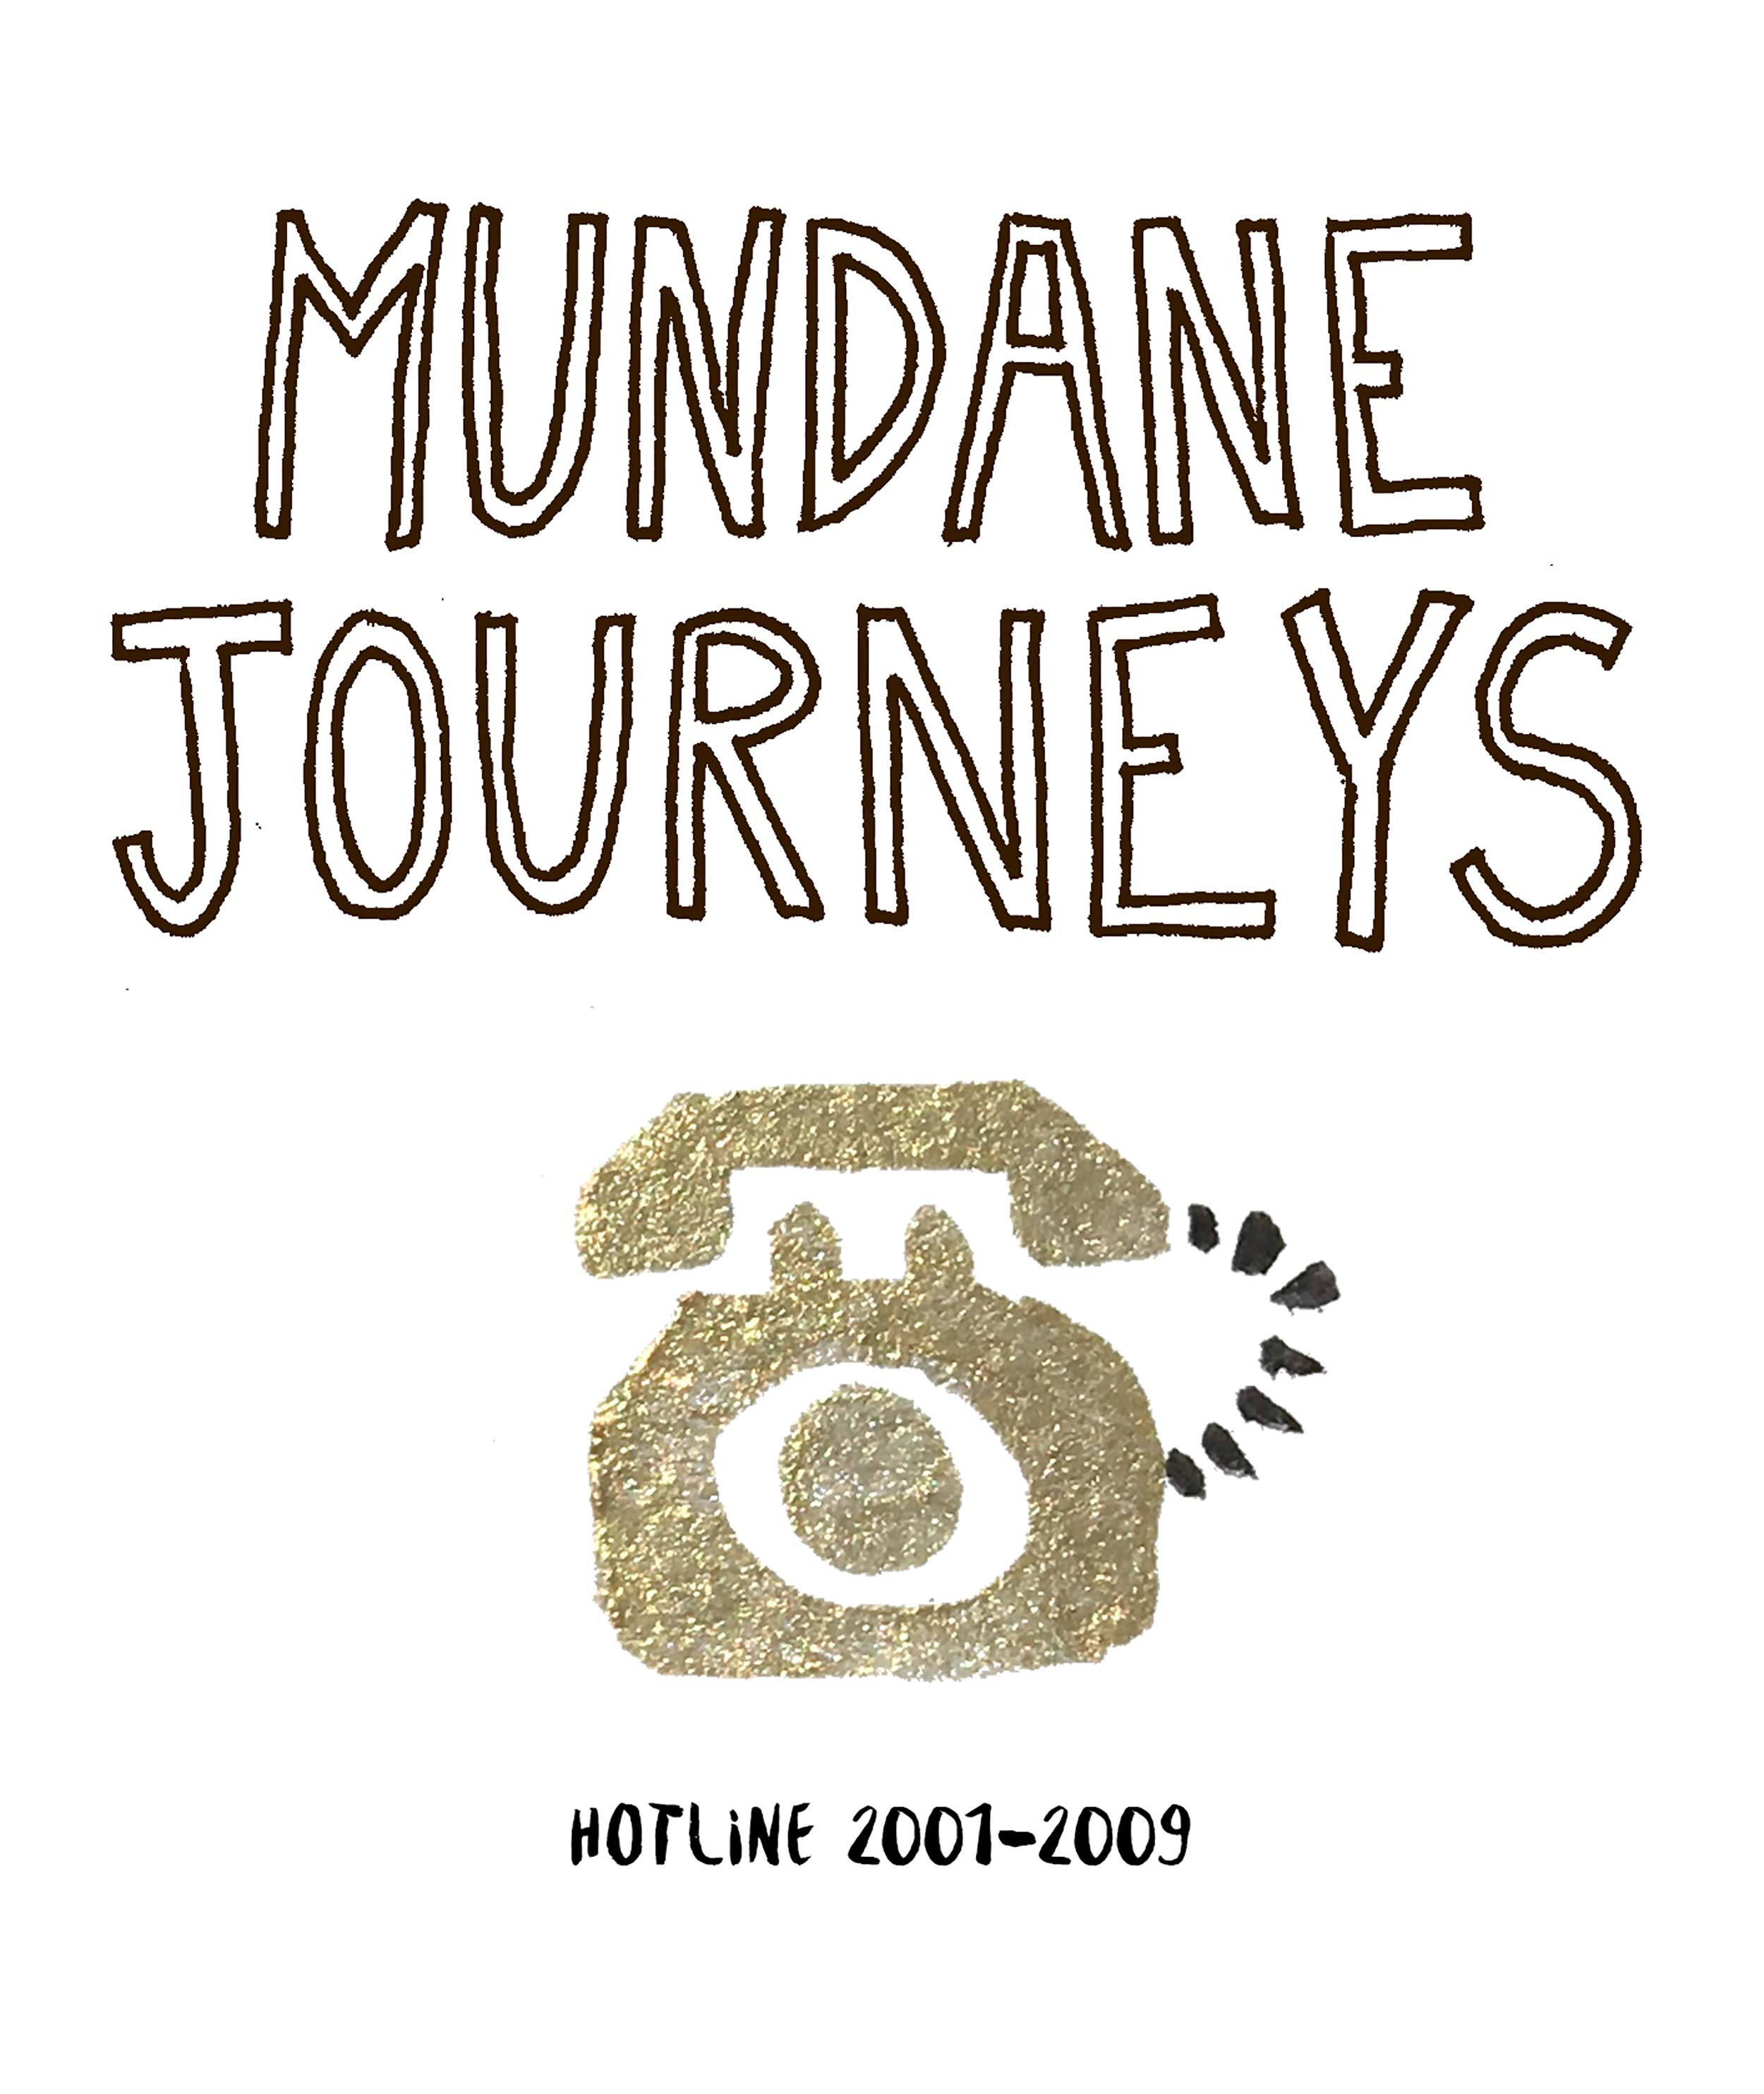 MUNDANE JOURNEYS HOTLINE